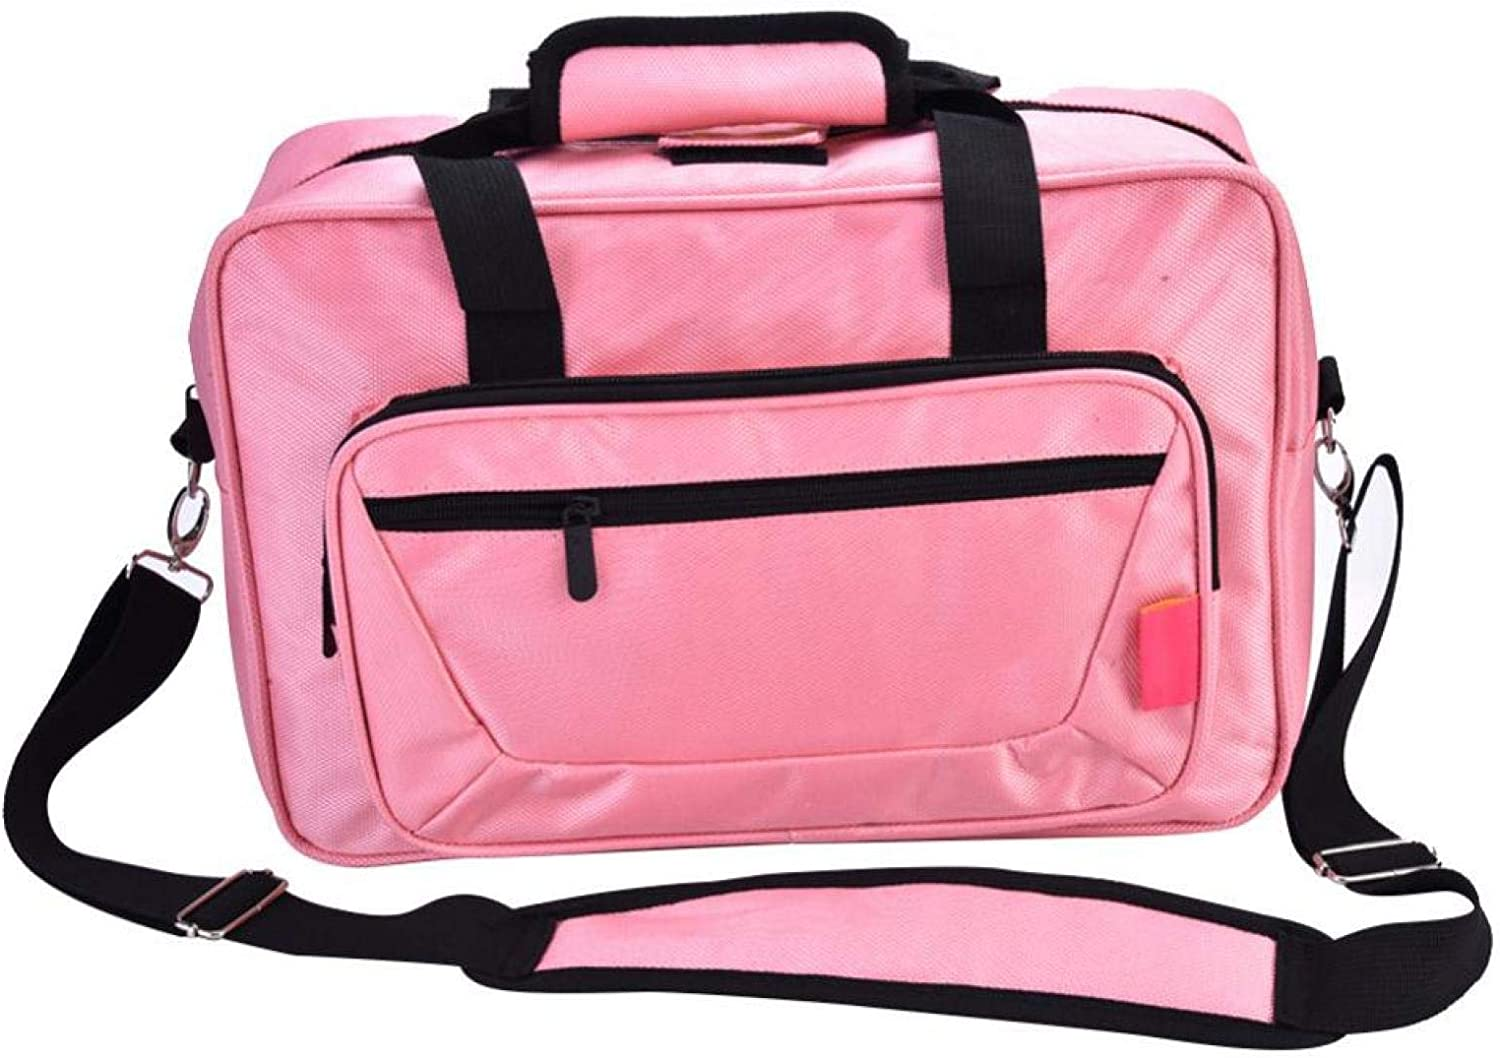 Japan Maker New Useful Clarinet Bag quality assurance for pink Enthusiasts Oboe